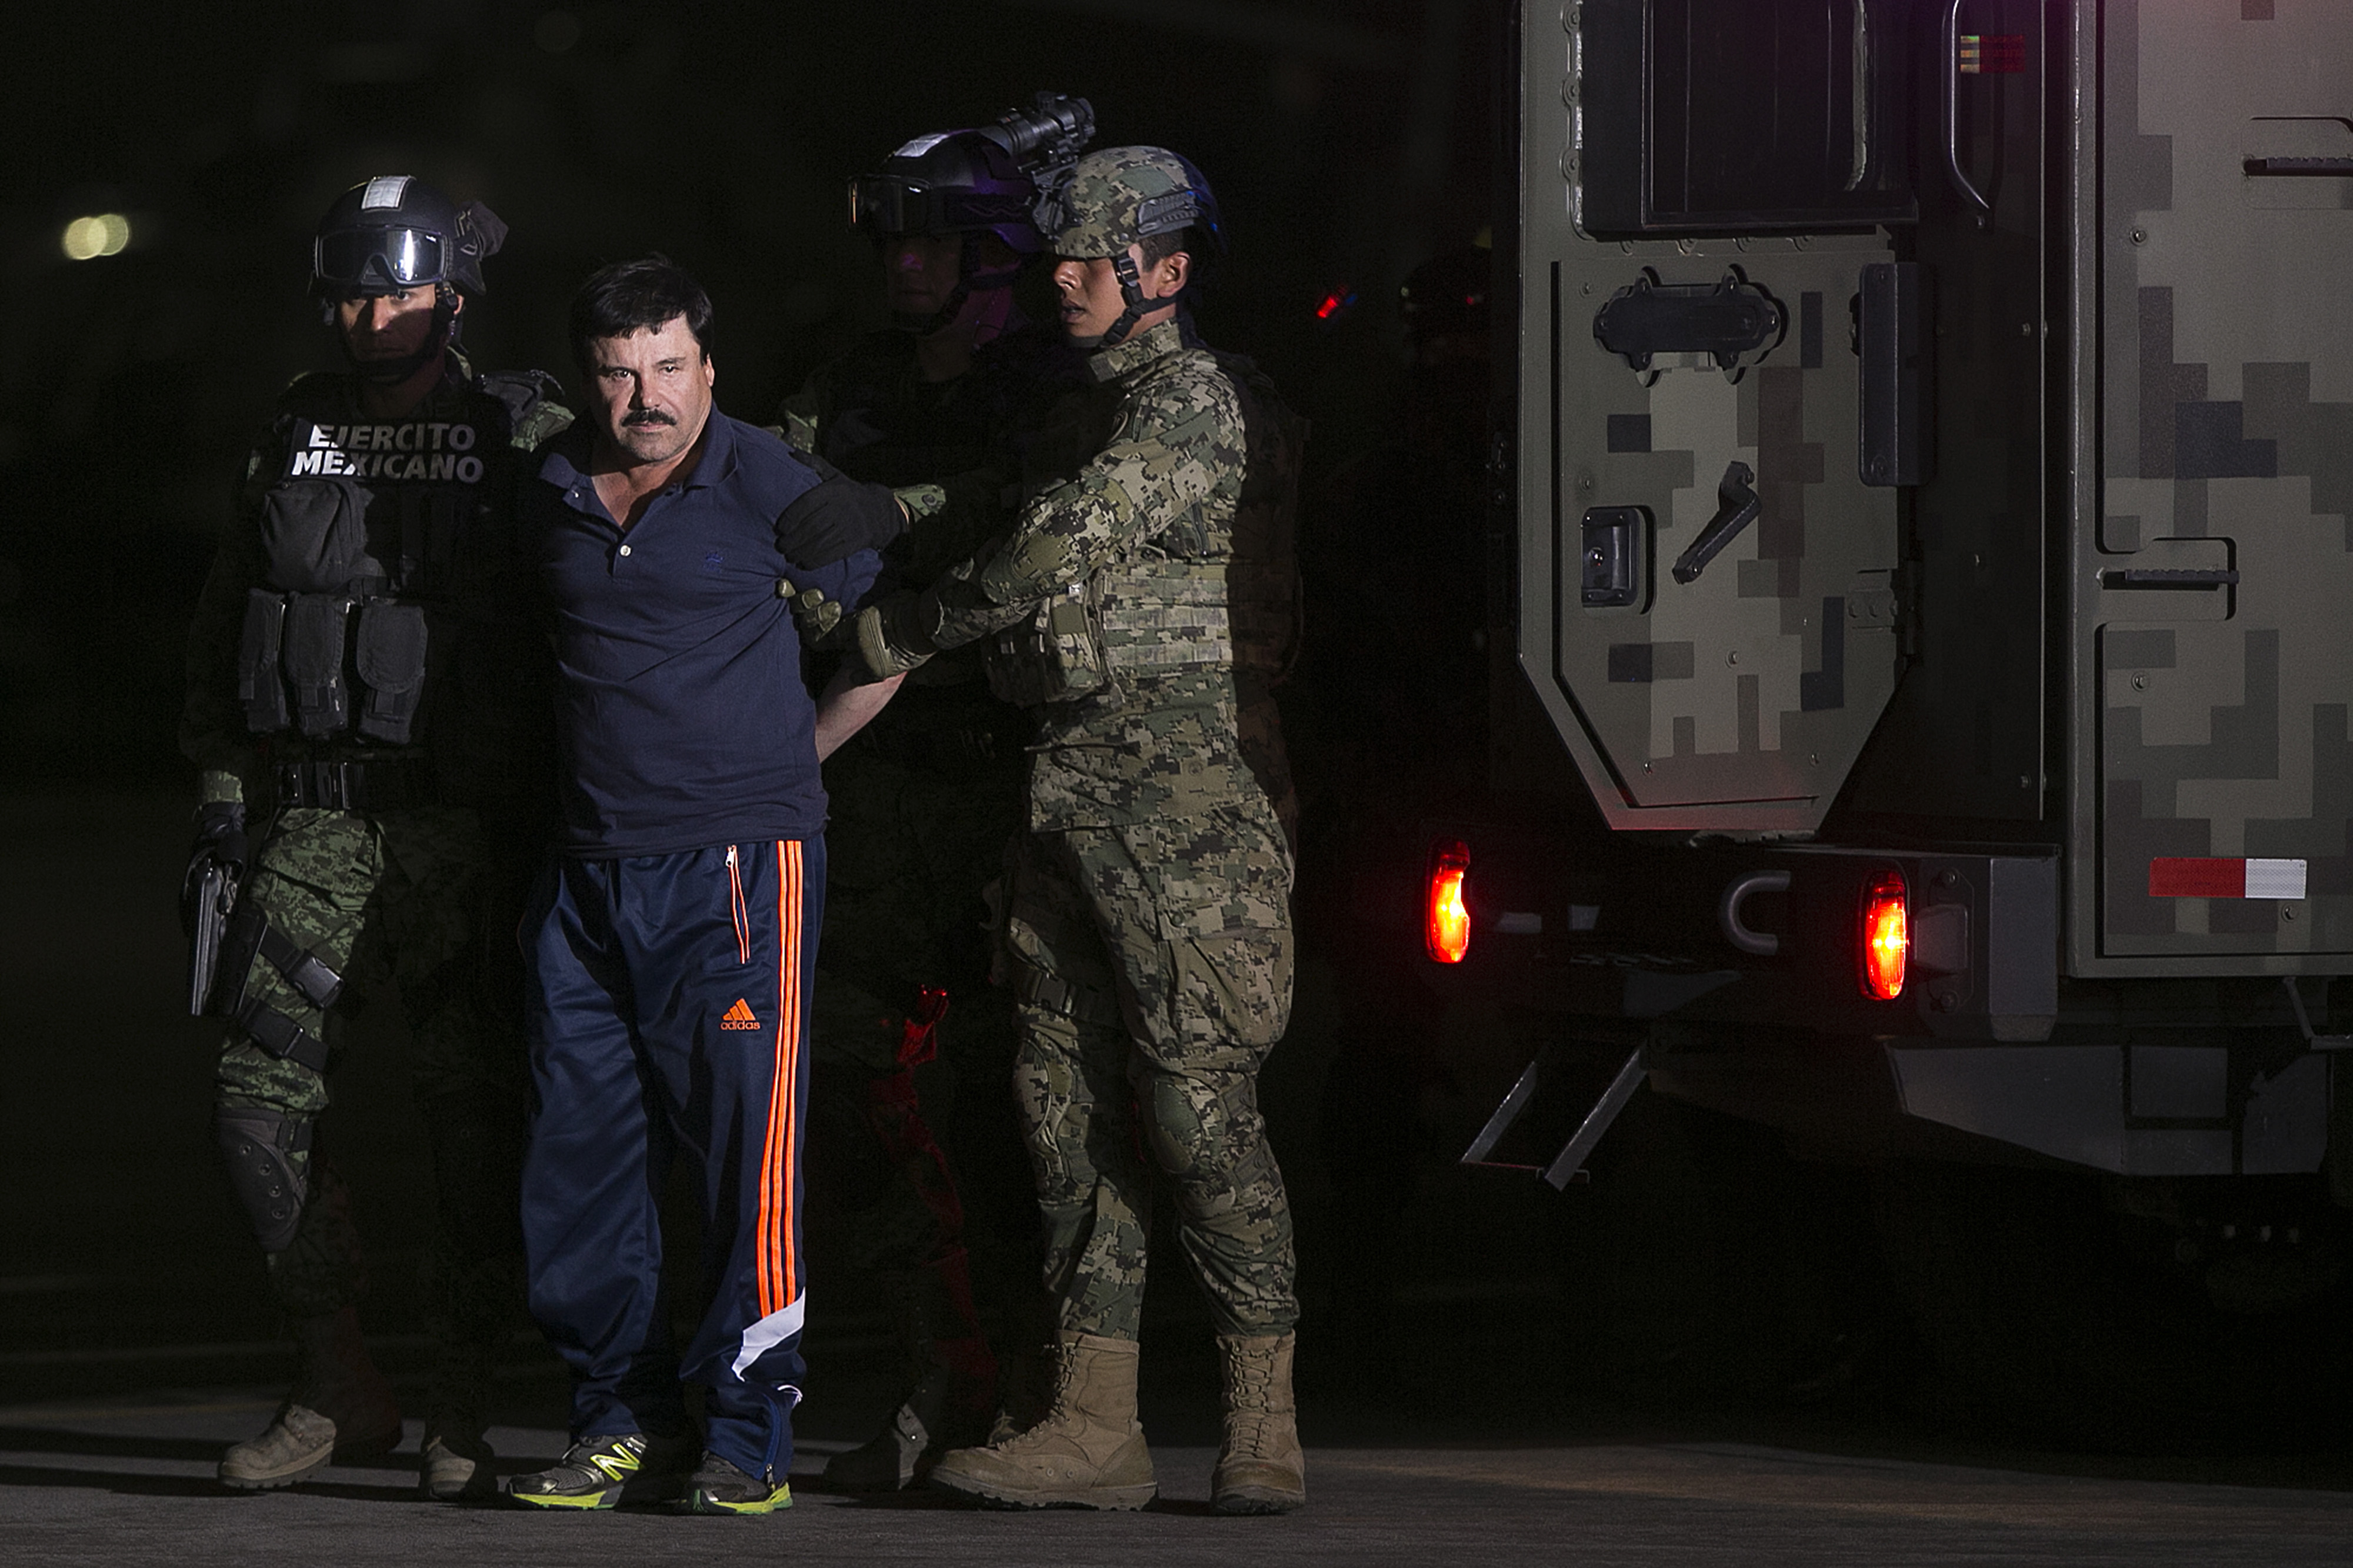 Joaquin Guzman, the world's most wanted-drug trafficker, second left, is escorted by Mexican security forces at a Navy hangar in Mexico City, Mexico, on Jan. 8, 2016.